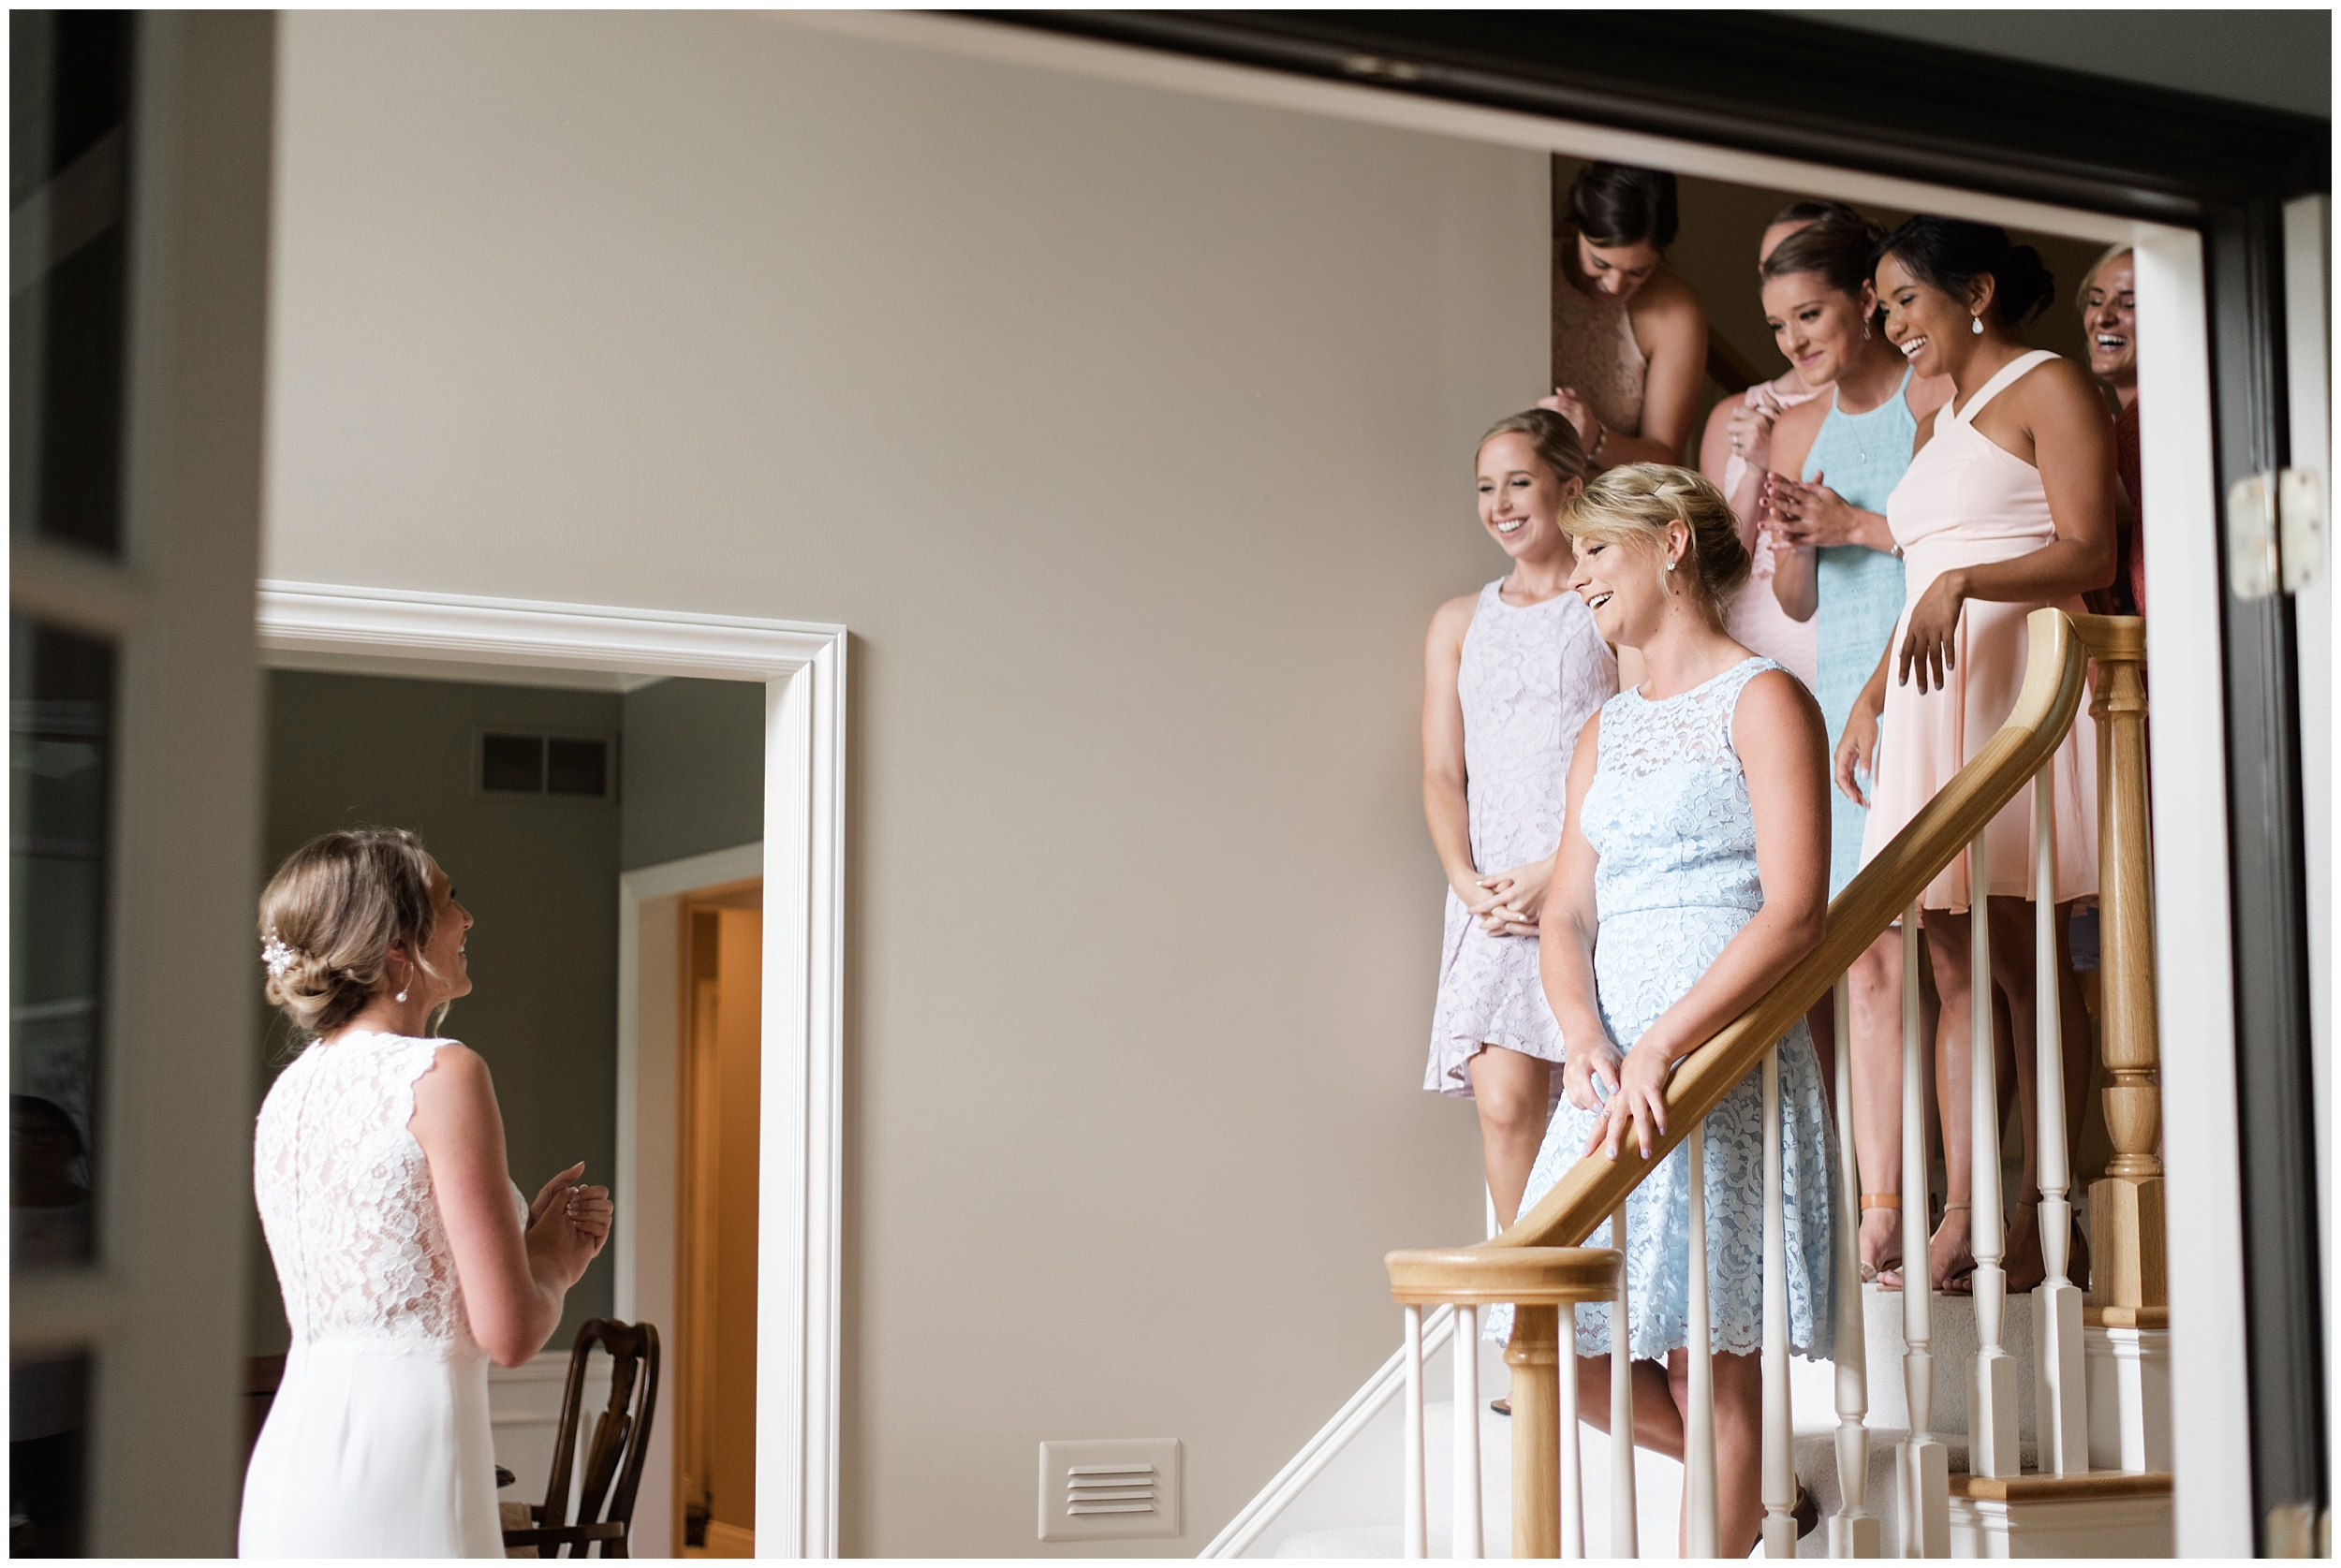 Whimsical-Ethereal-July-Kalamazoo-Wedding-Bright-Airy-Documentary-Milwaukee-Photographer_0012.jpg